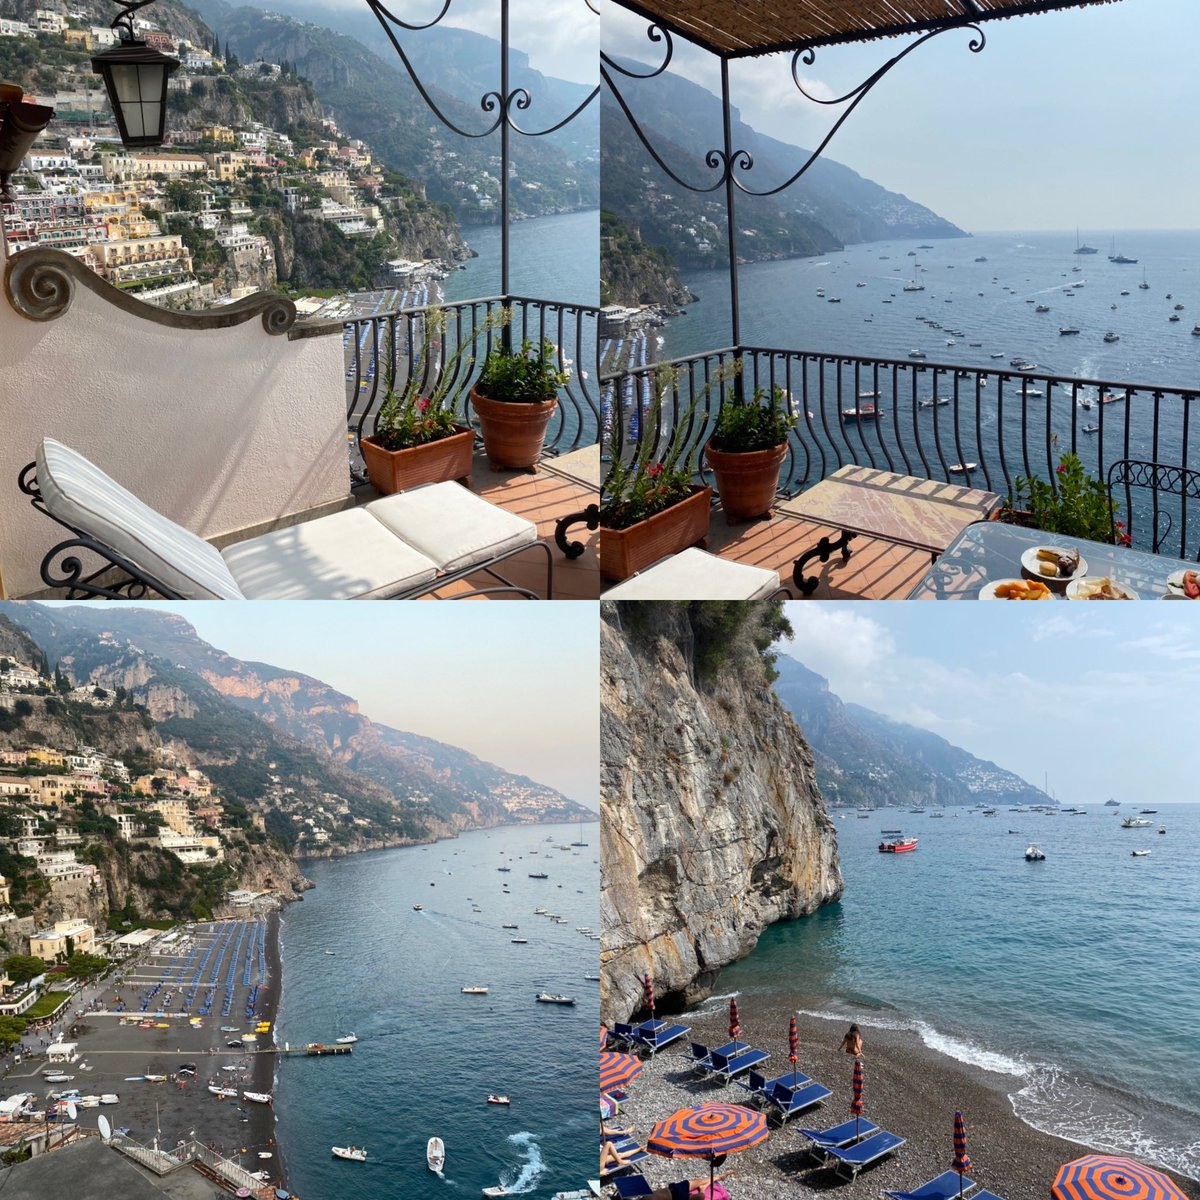 Difficult to capture the sheer magic of Positano and @infomiramare but here goes